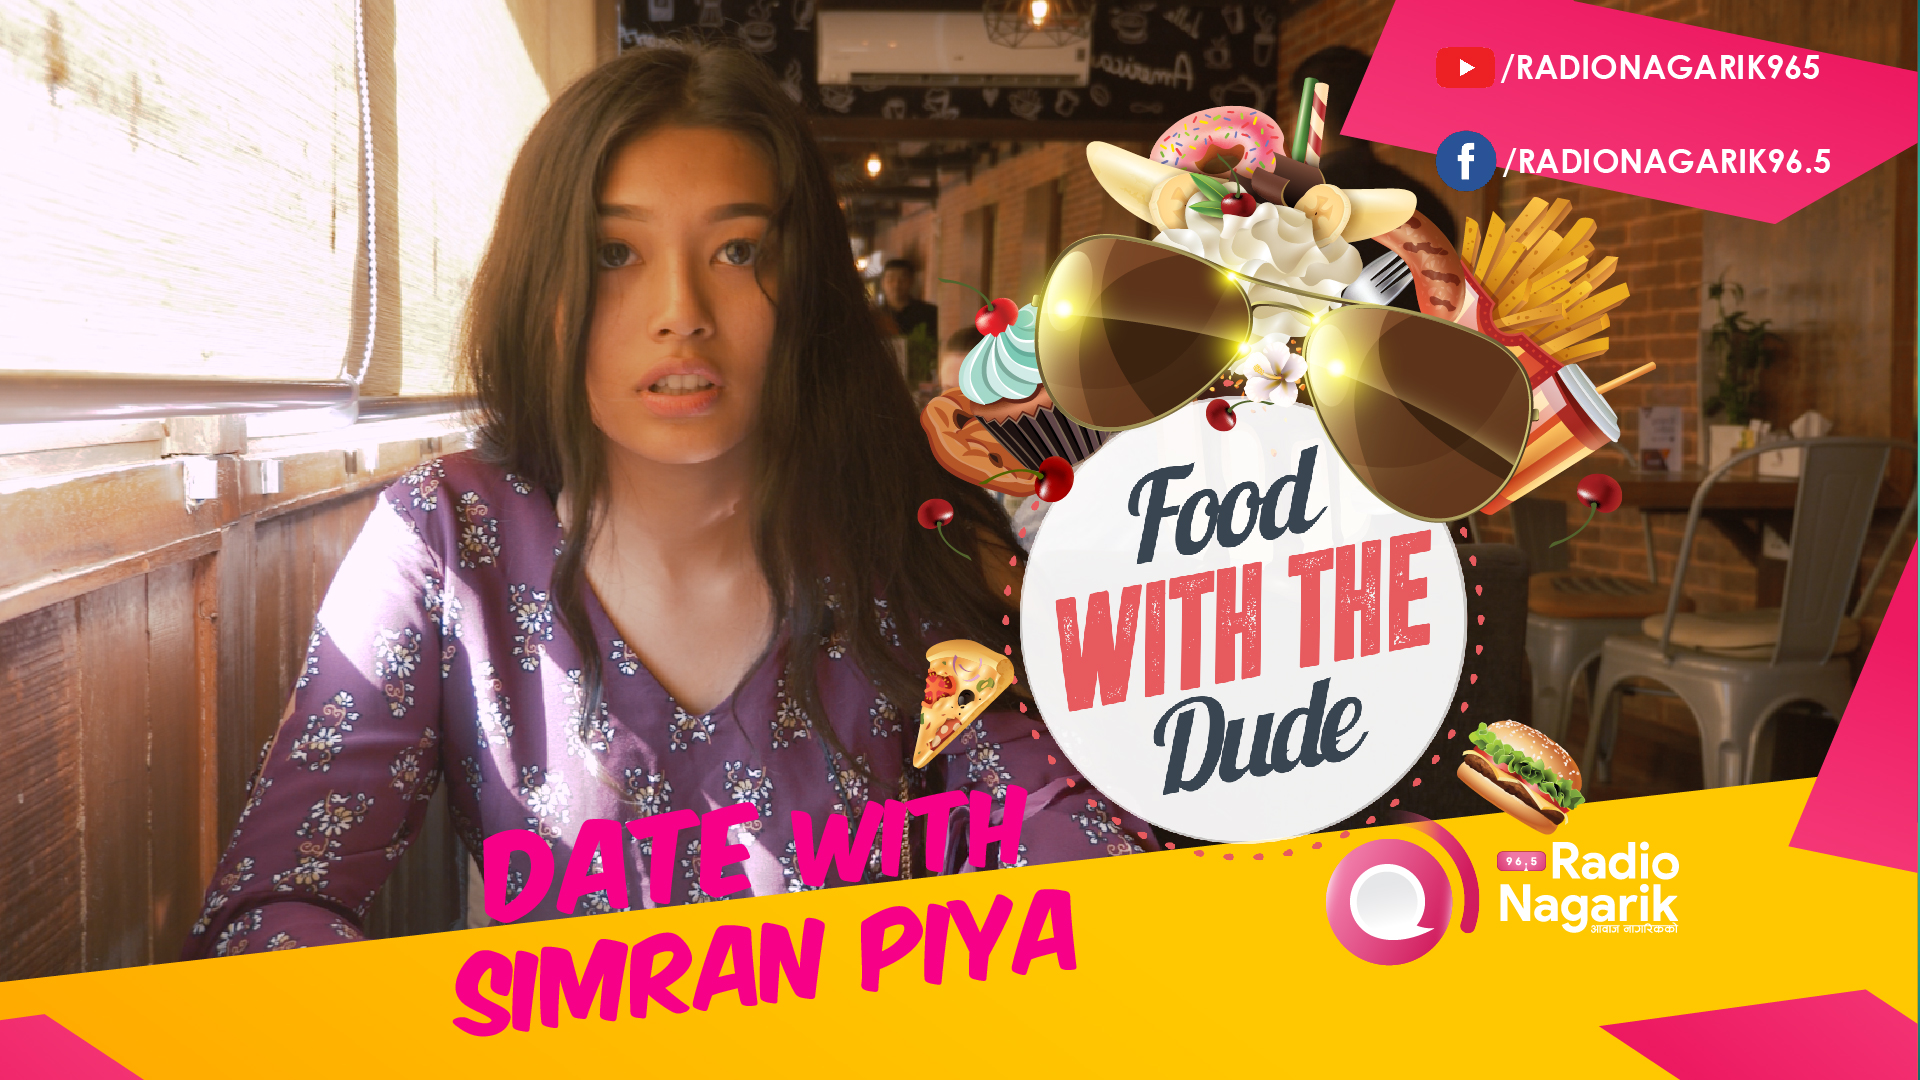 Date with SIMRAN PIYA | Local dishes around Mangal Bazaar - DATE 10 | Food With The Dude